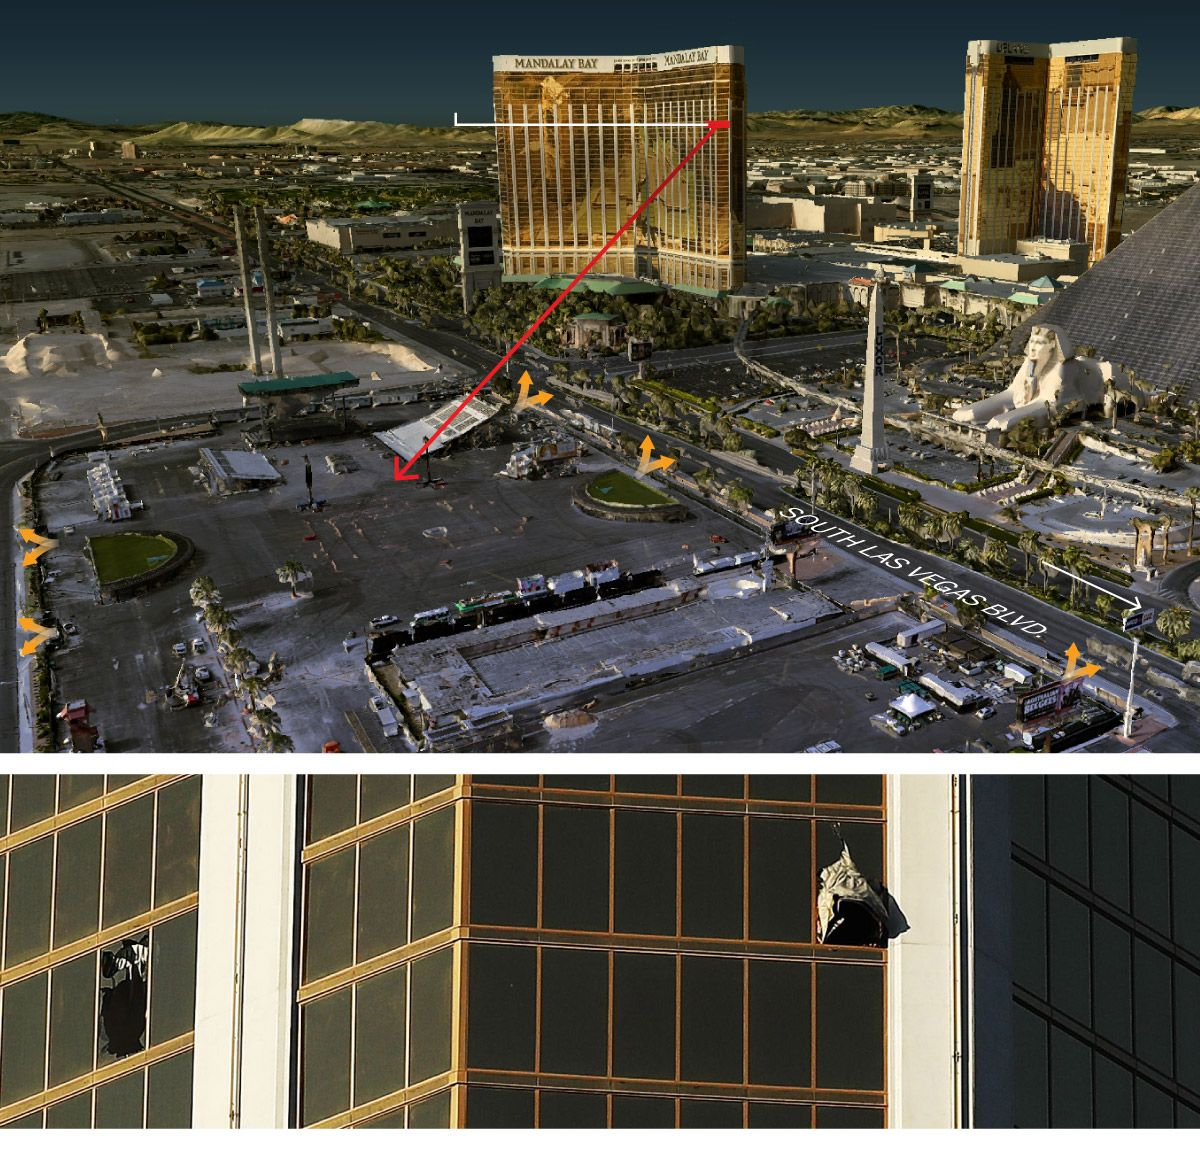 What We Know About The Las Vegas Shooting Free Slots Mandalay